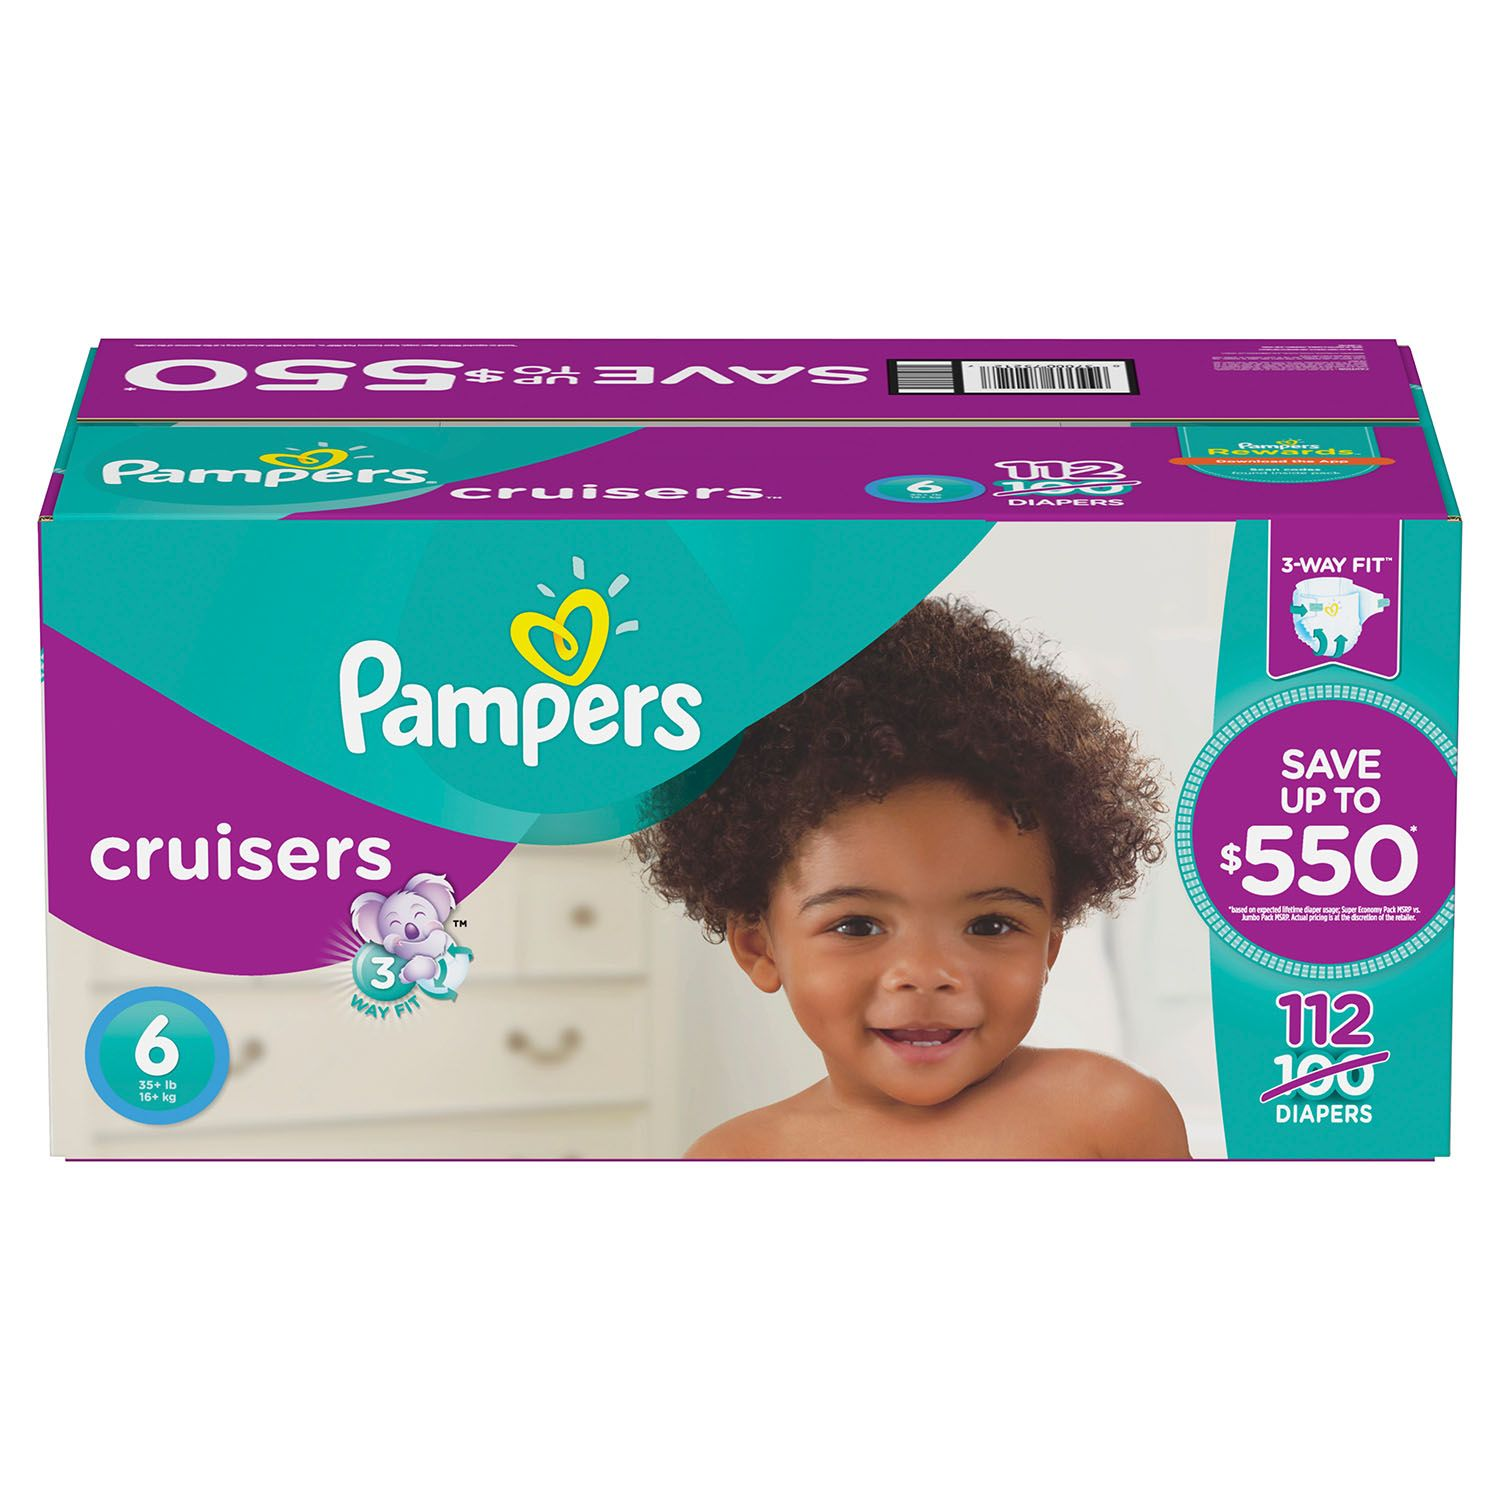 Pampers Cruisers Disposable Diapers Size 6, 112 Count, ECONOMY PACK PLUS by Discount Market Place